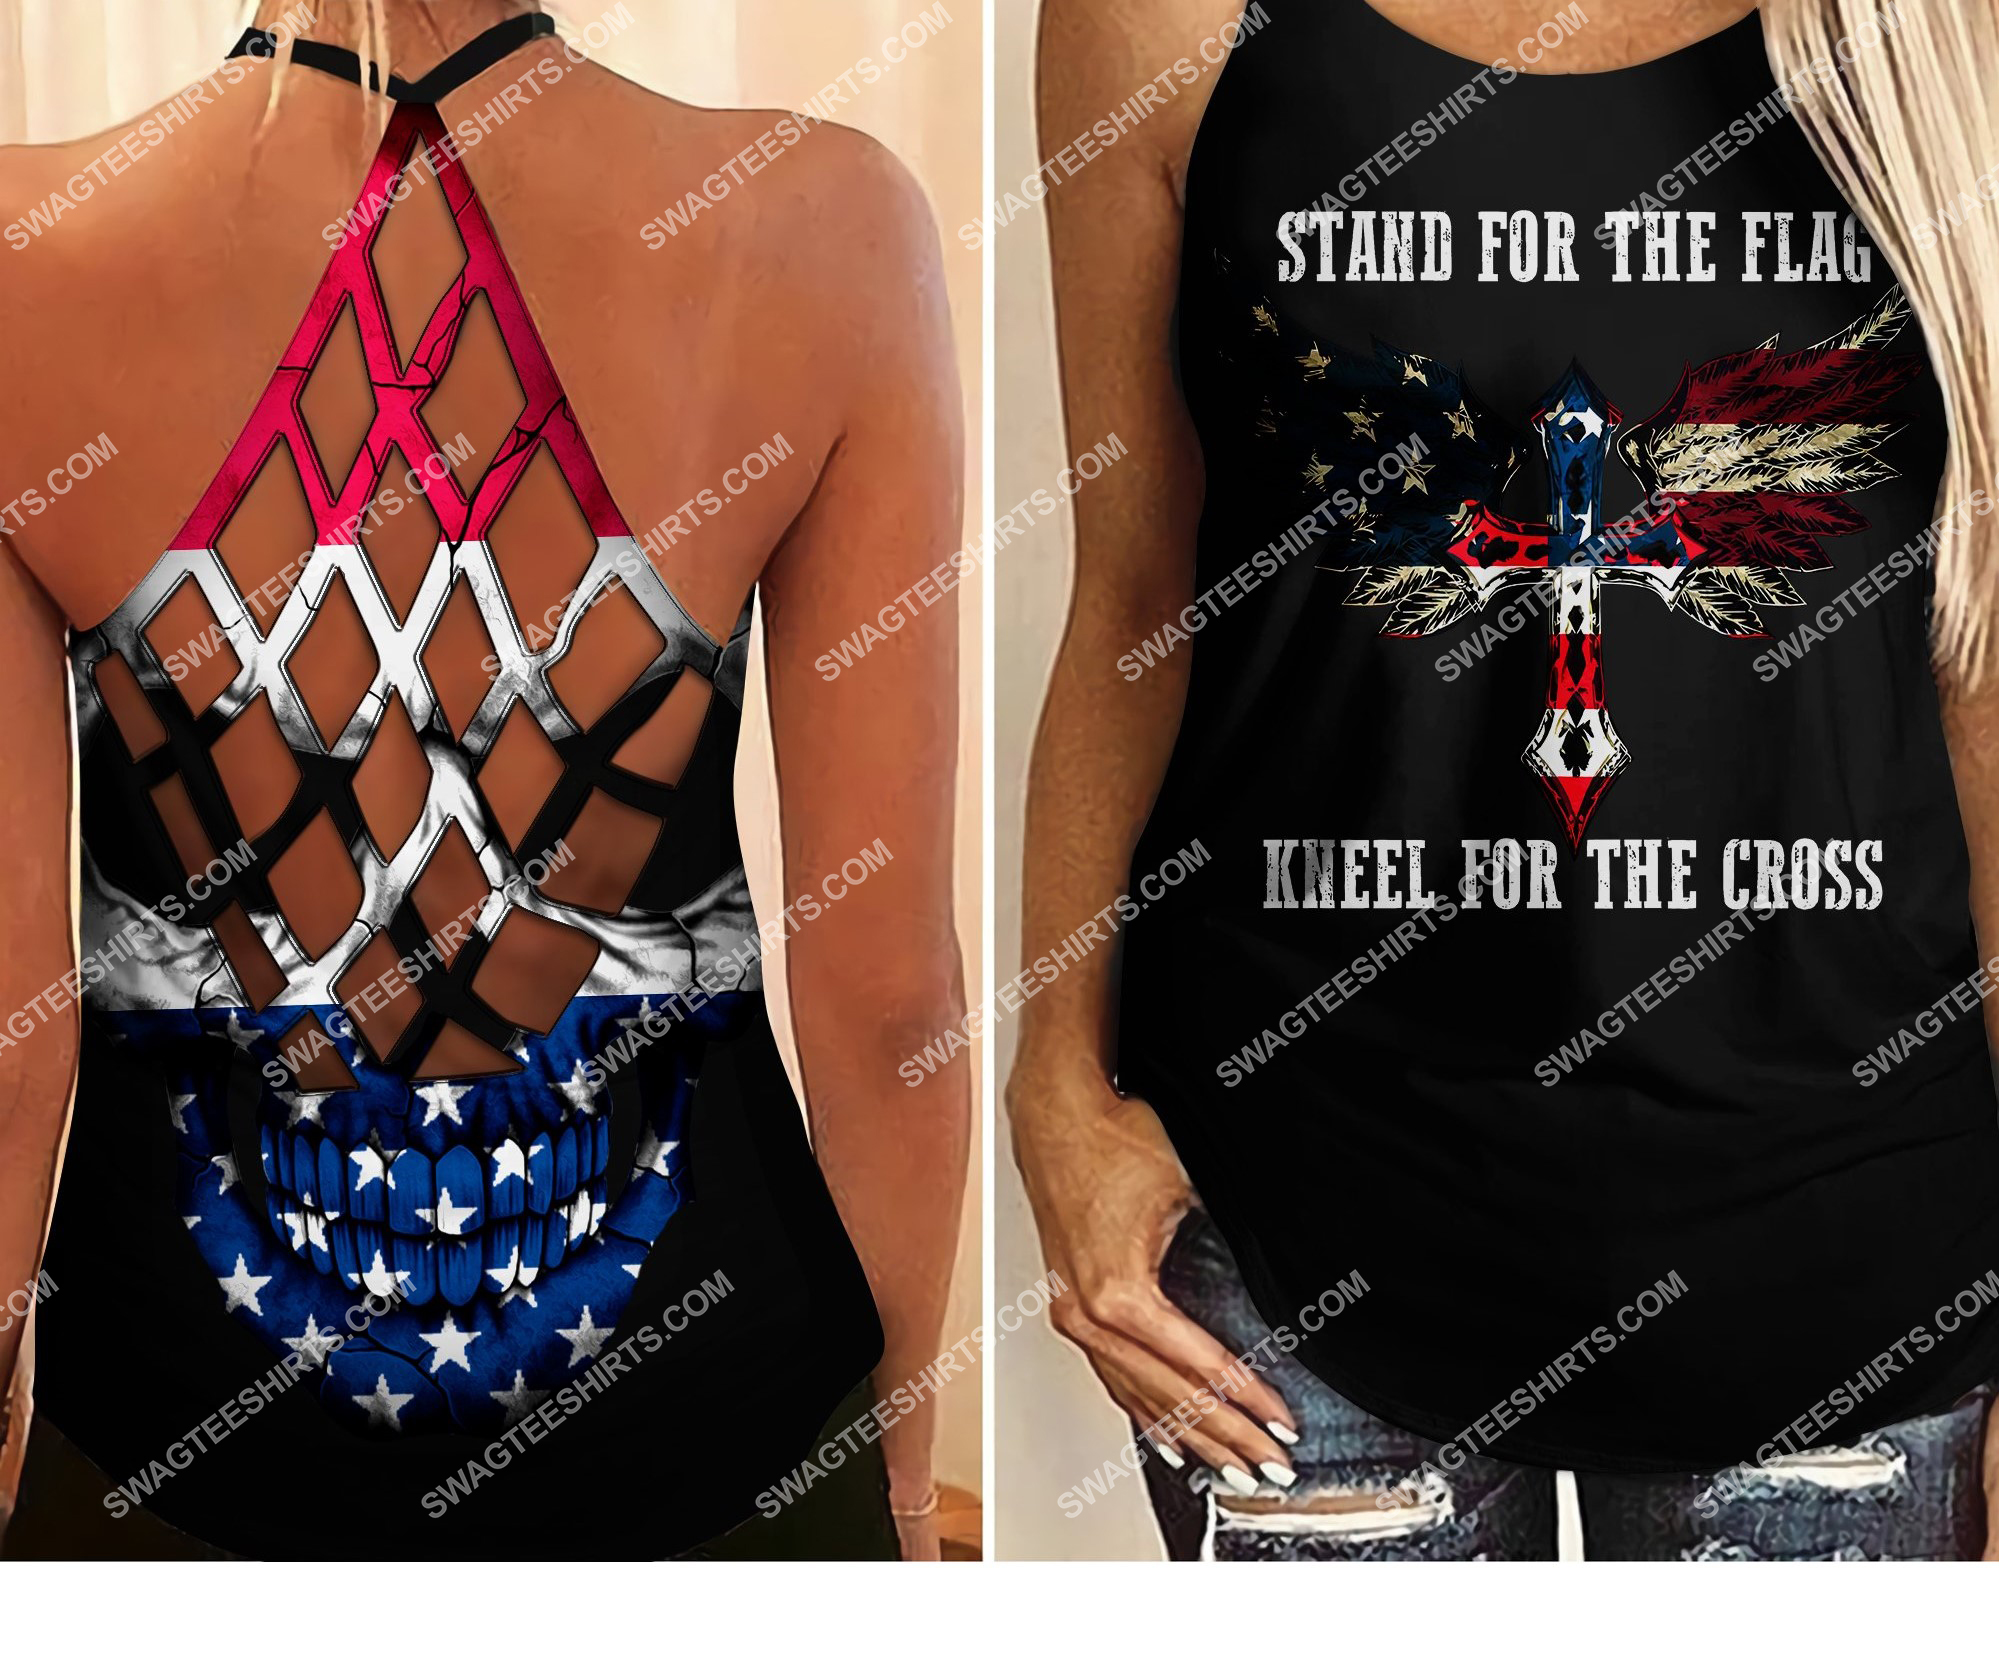 stand for flag kneel for cross all over printed strappy back tank top 2 - Copy (2)